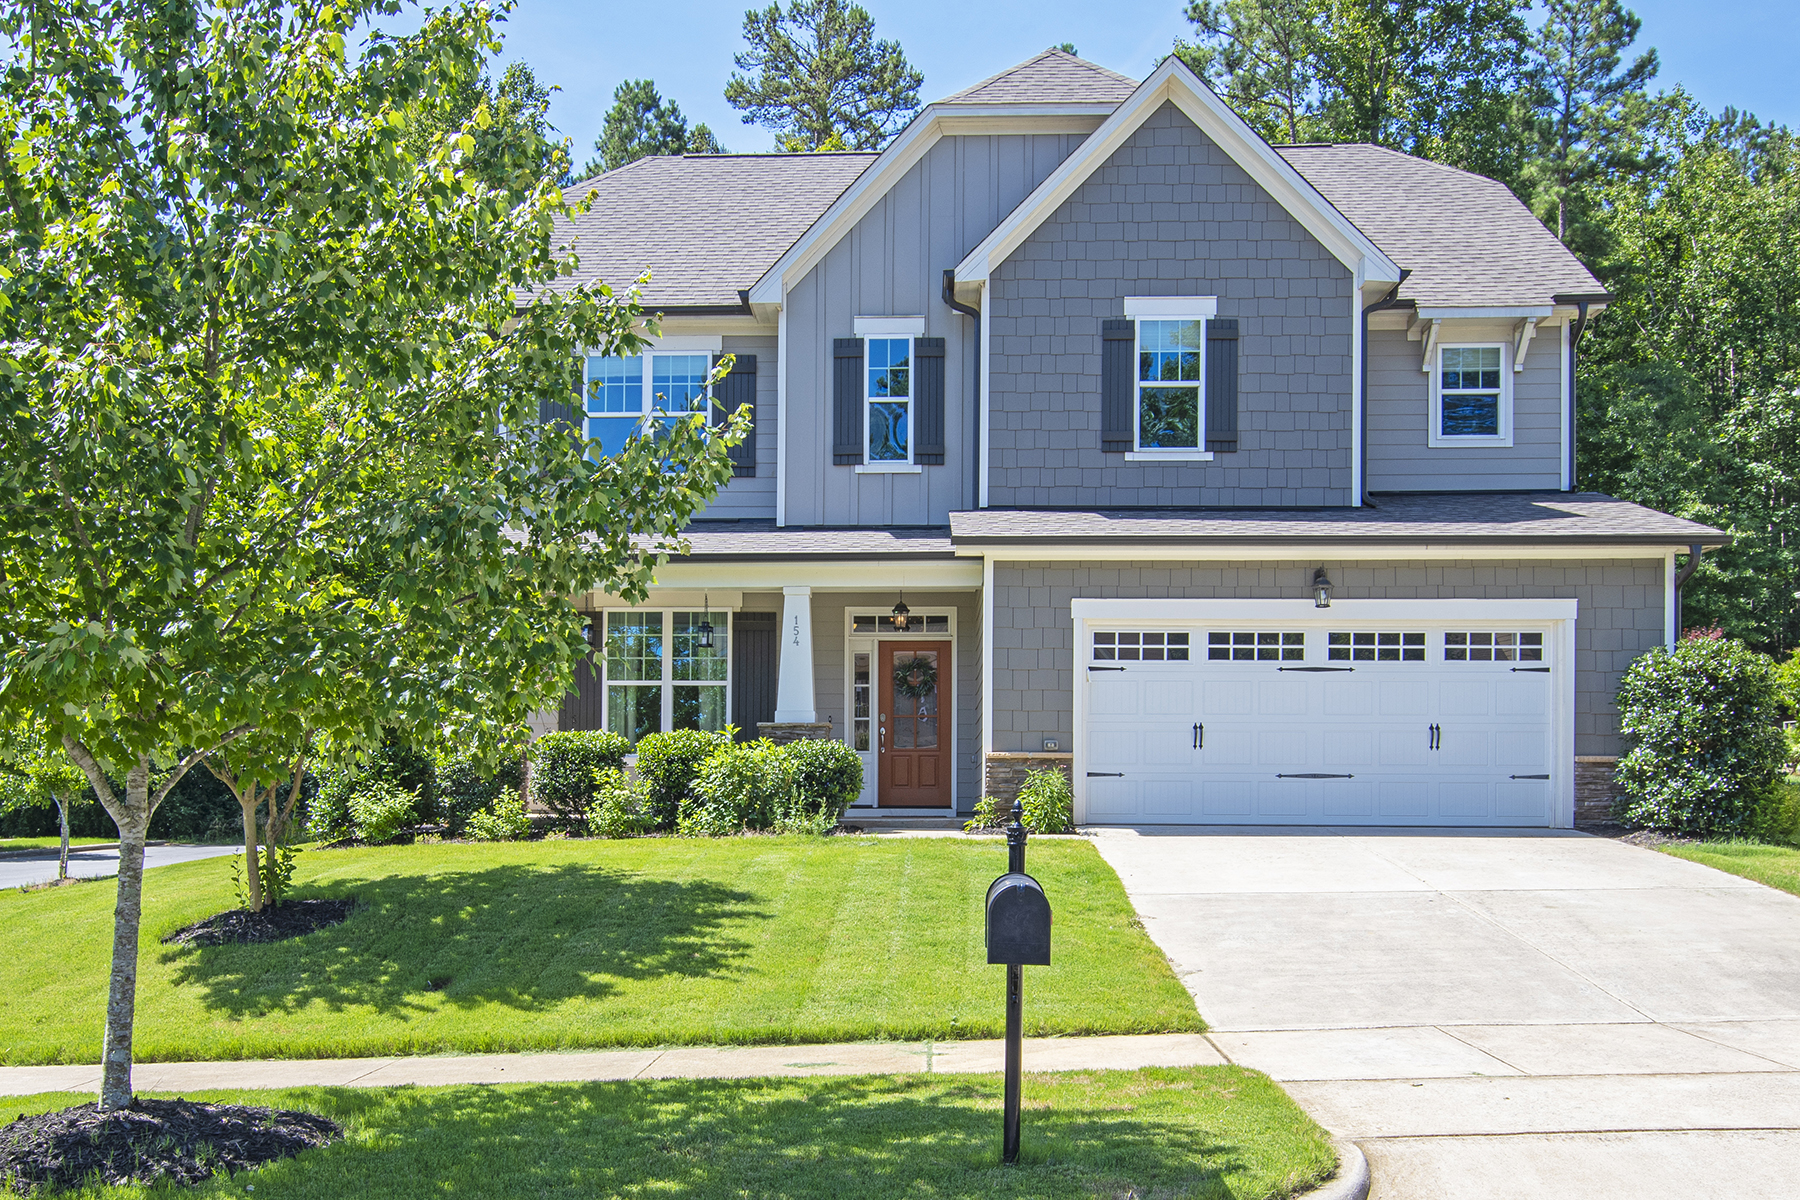 Single Family Homes for Sale at Exquisite three-story home within sought-after Powell Place in Pittsboro 154 S. Freeman Drive Pittsboro, North Carolina 27312 United States